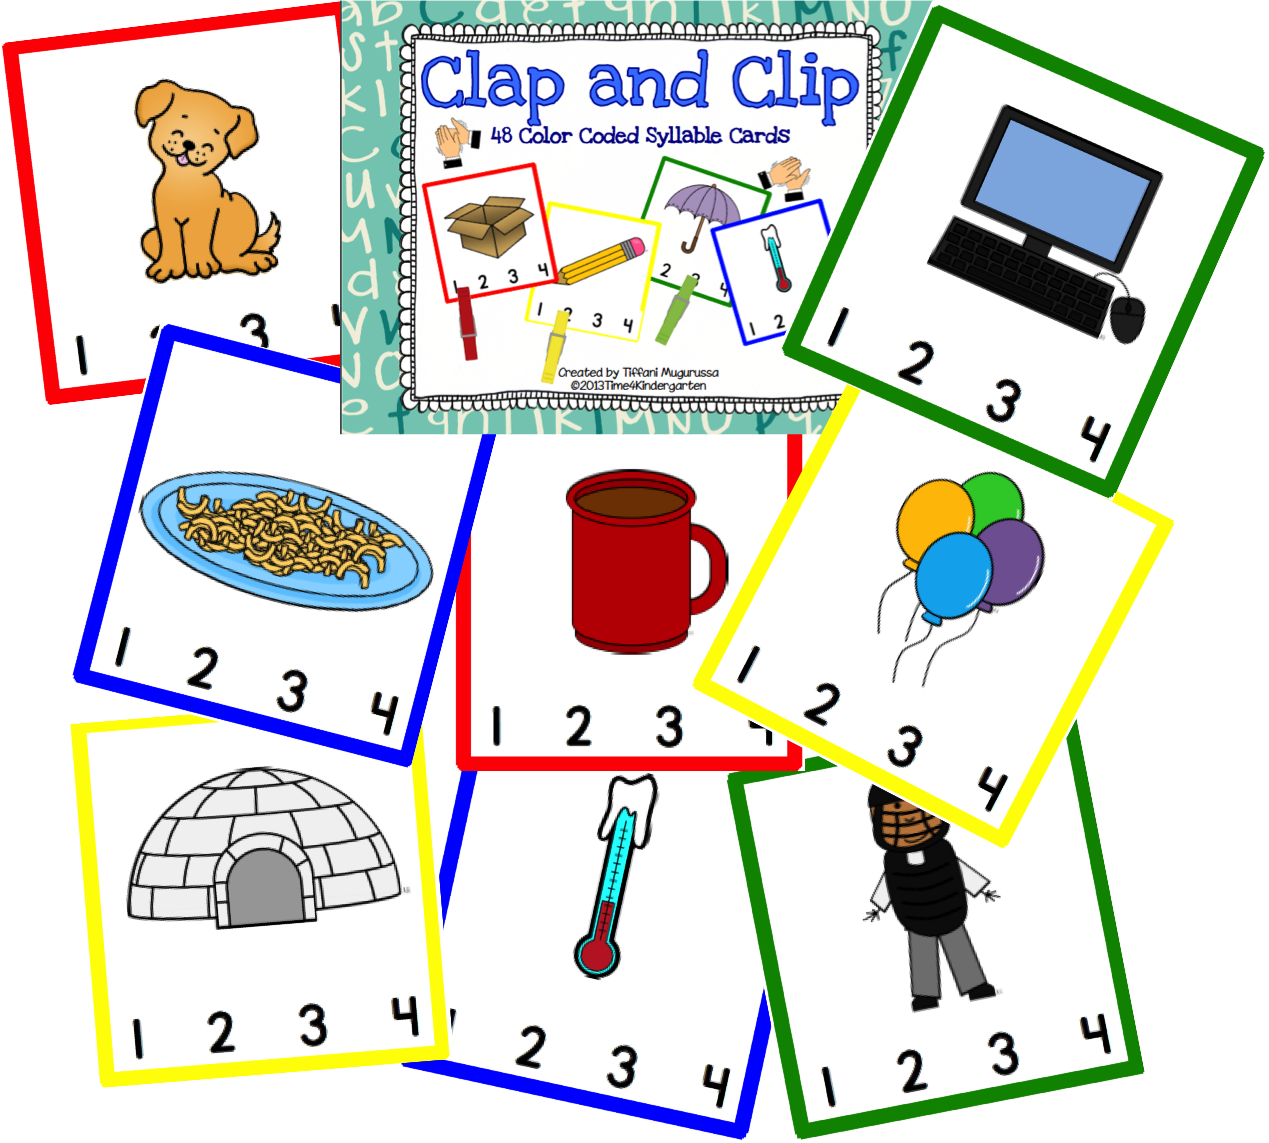 Clap And Clip Syllable Counting